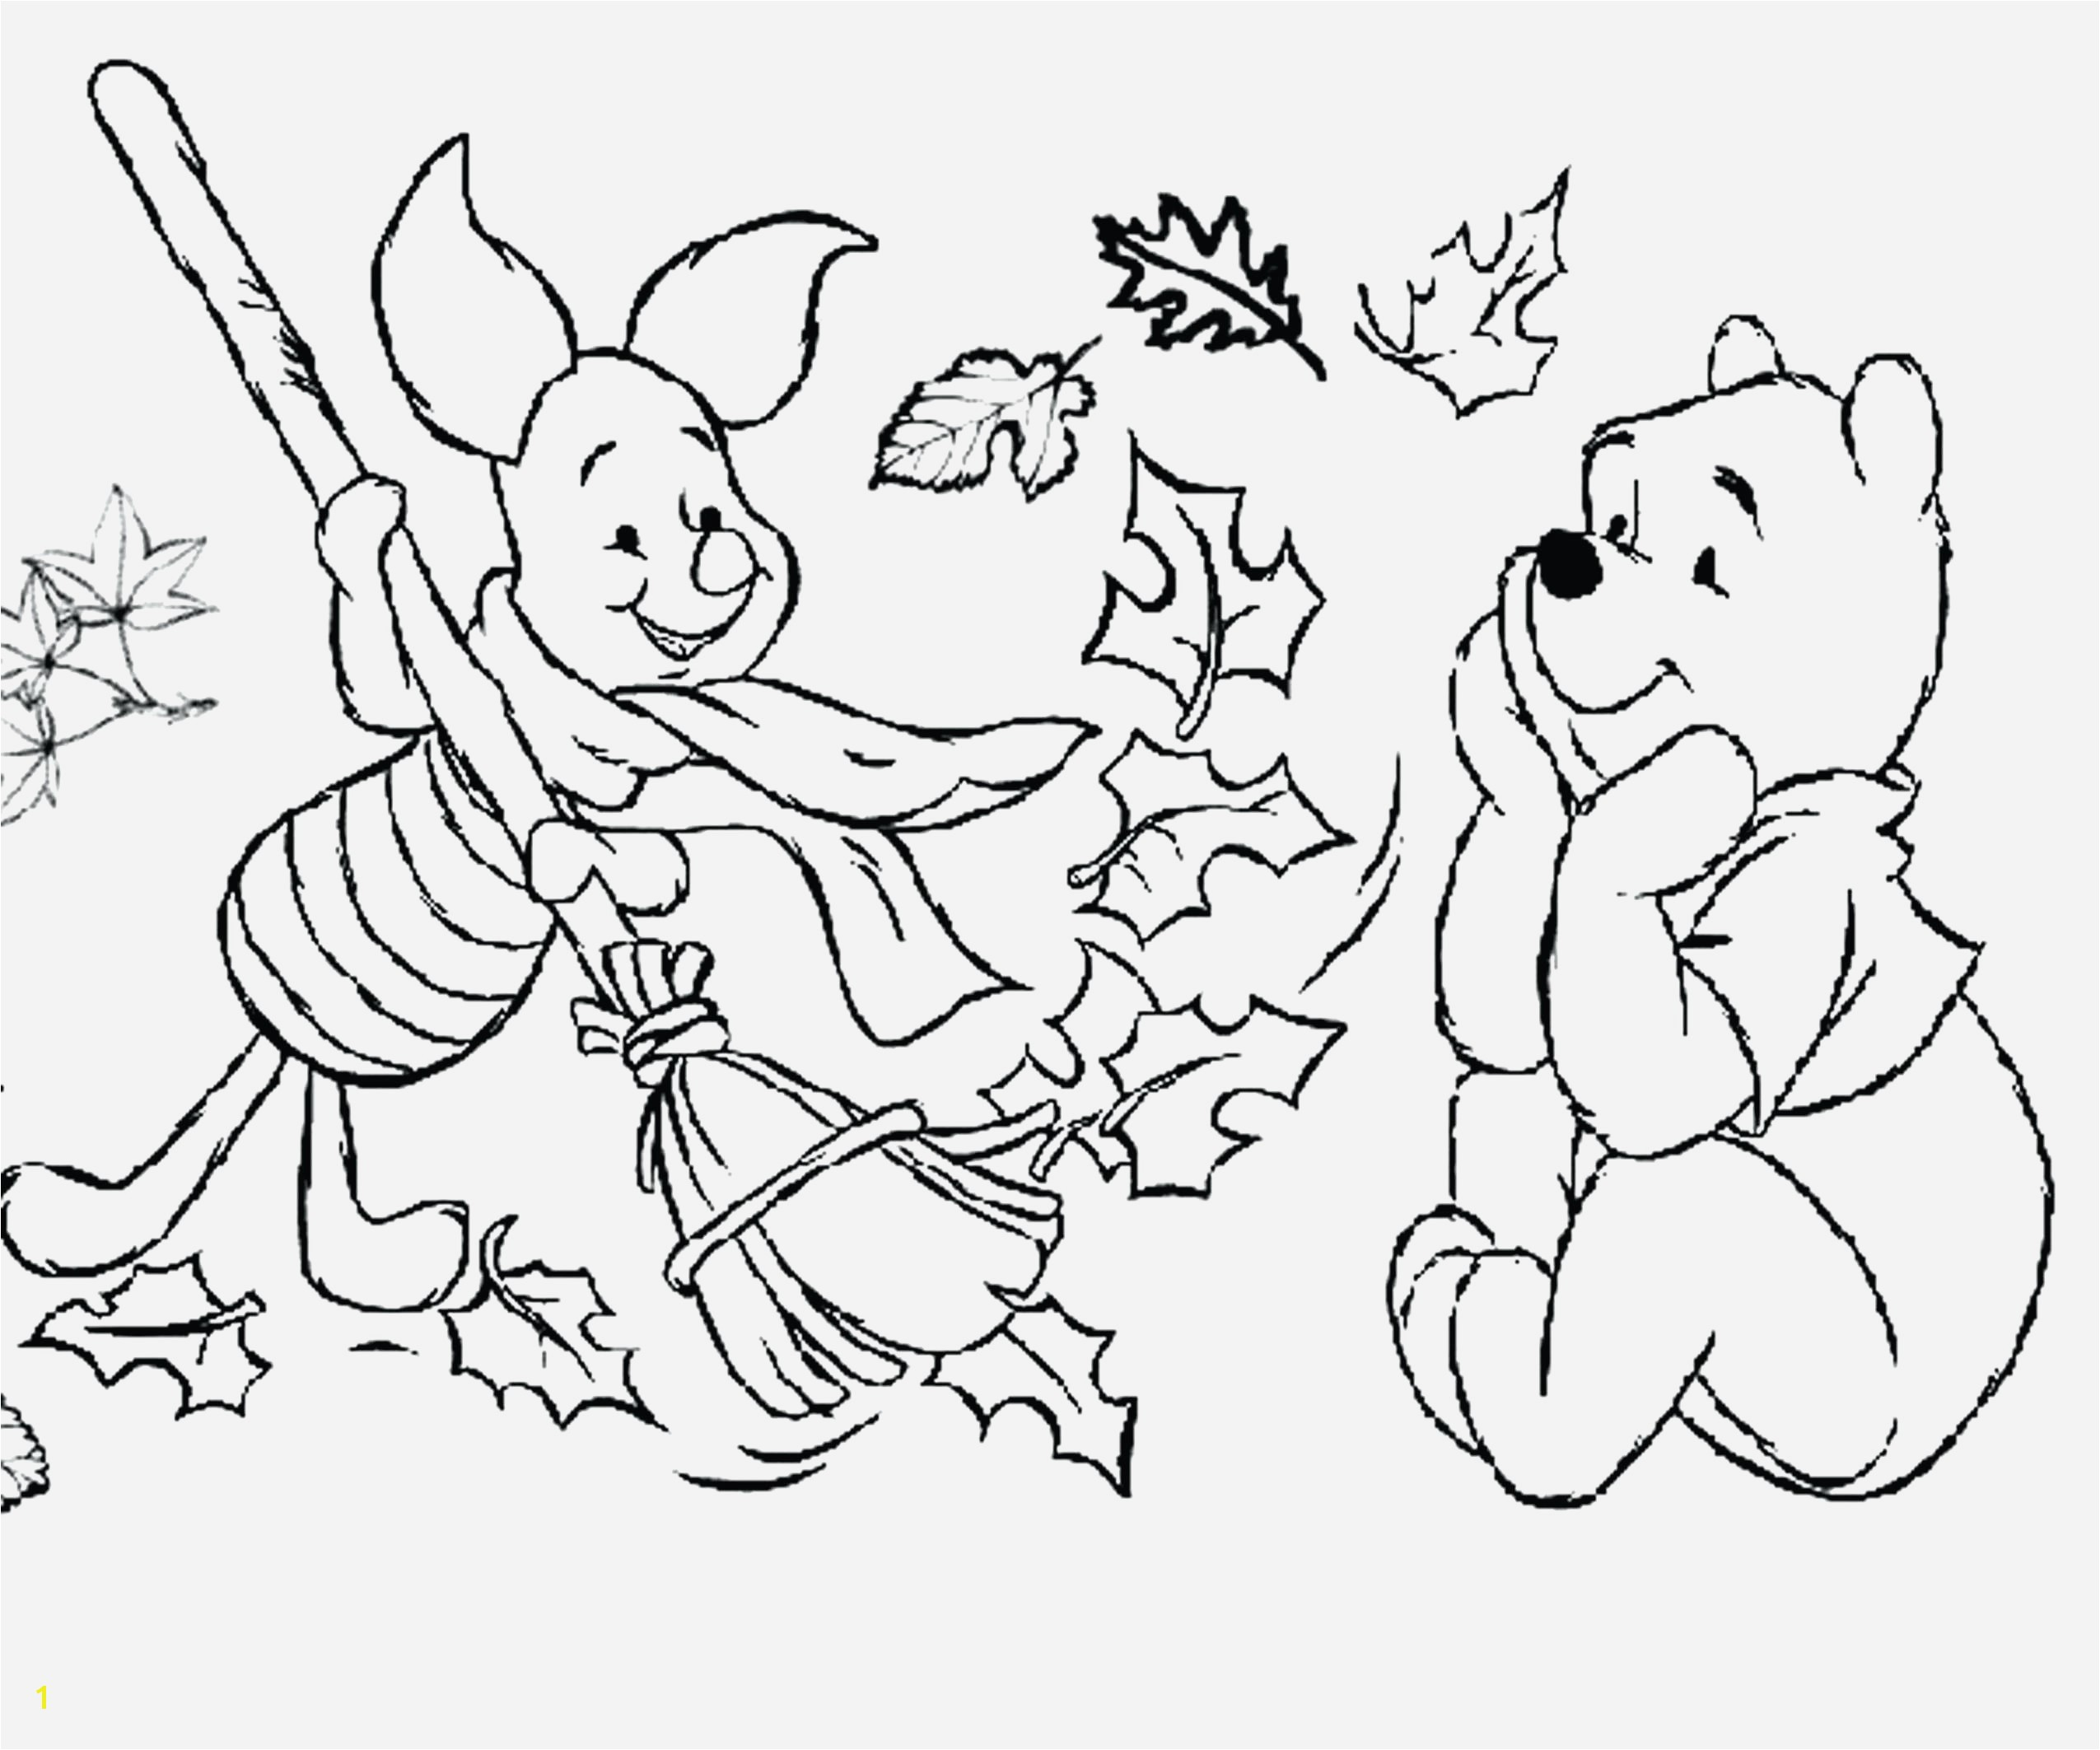 Childrens Coloring Pages Animals Nice Batman Coloring Pages Games New Fall Coloring Pages 0d Page for